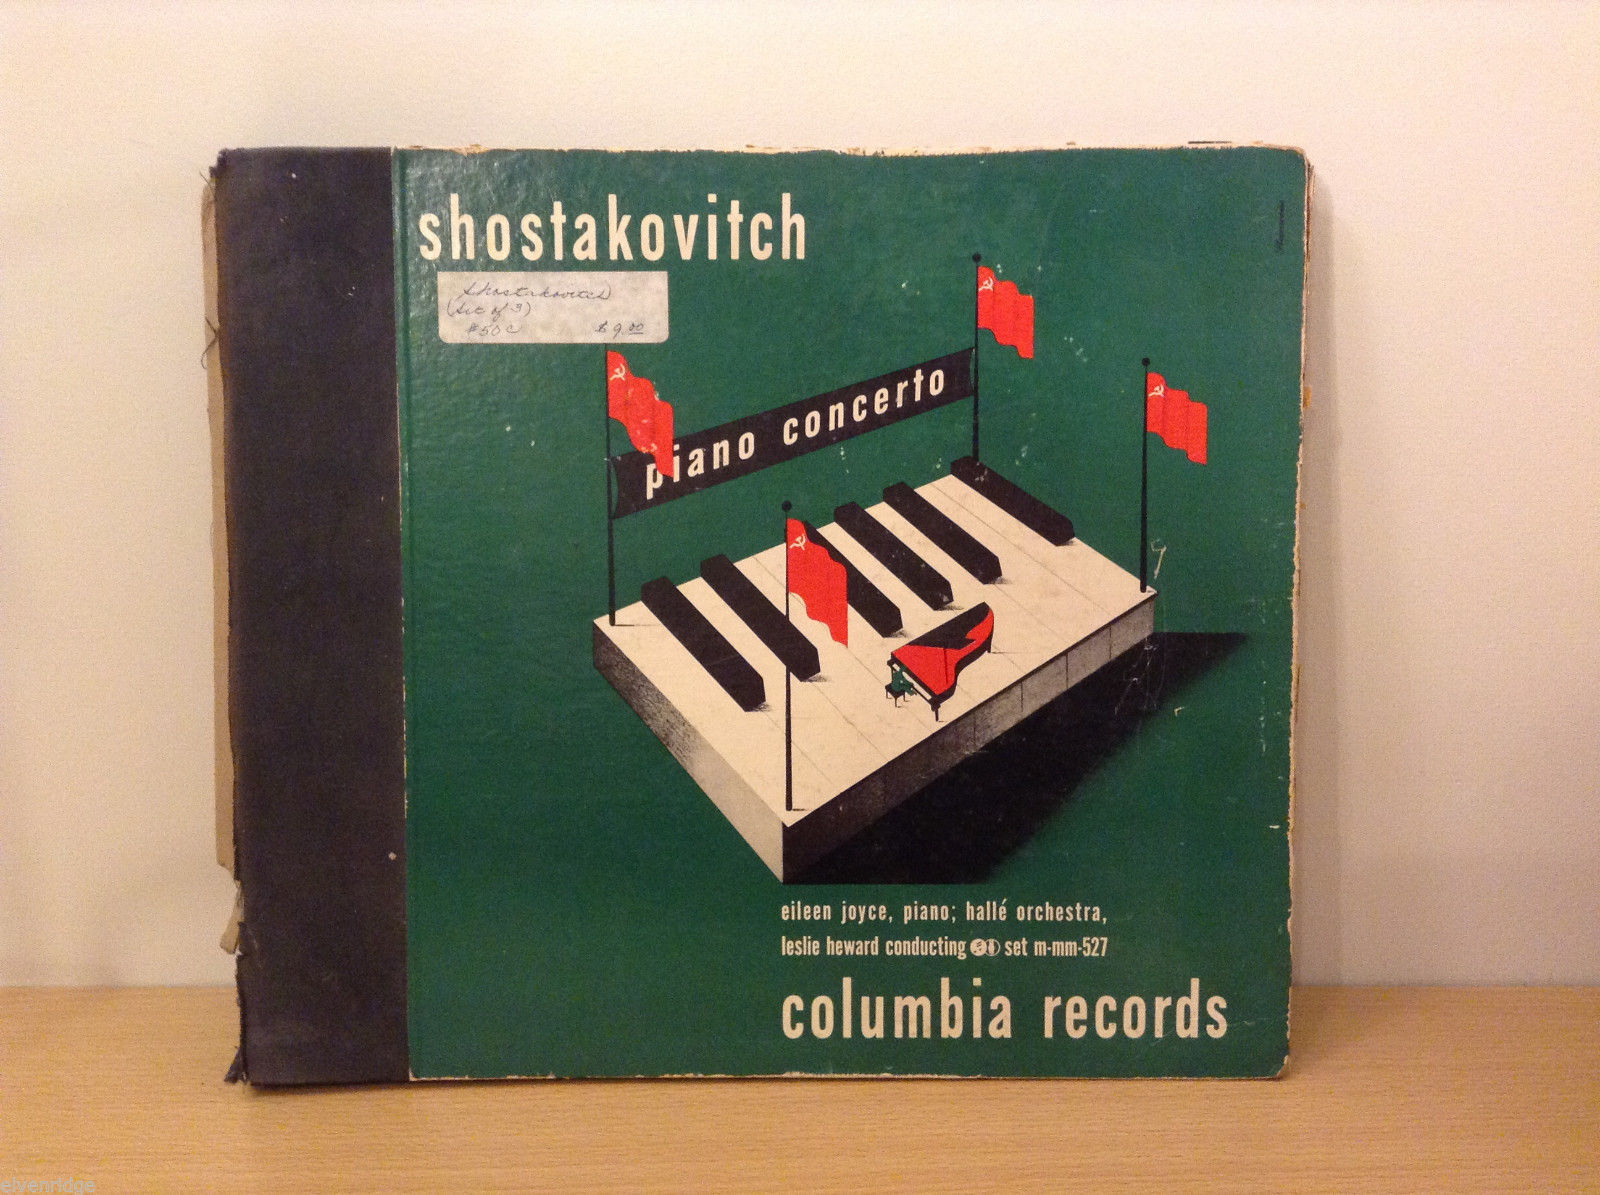 Shostakovich Concerto for piano and orchestra op. 35 columbia records